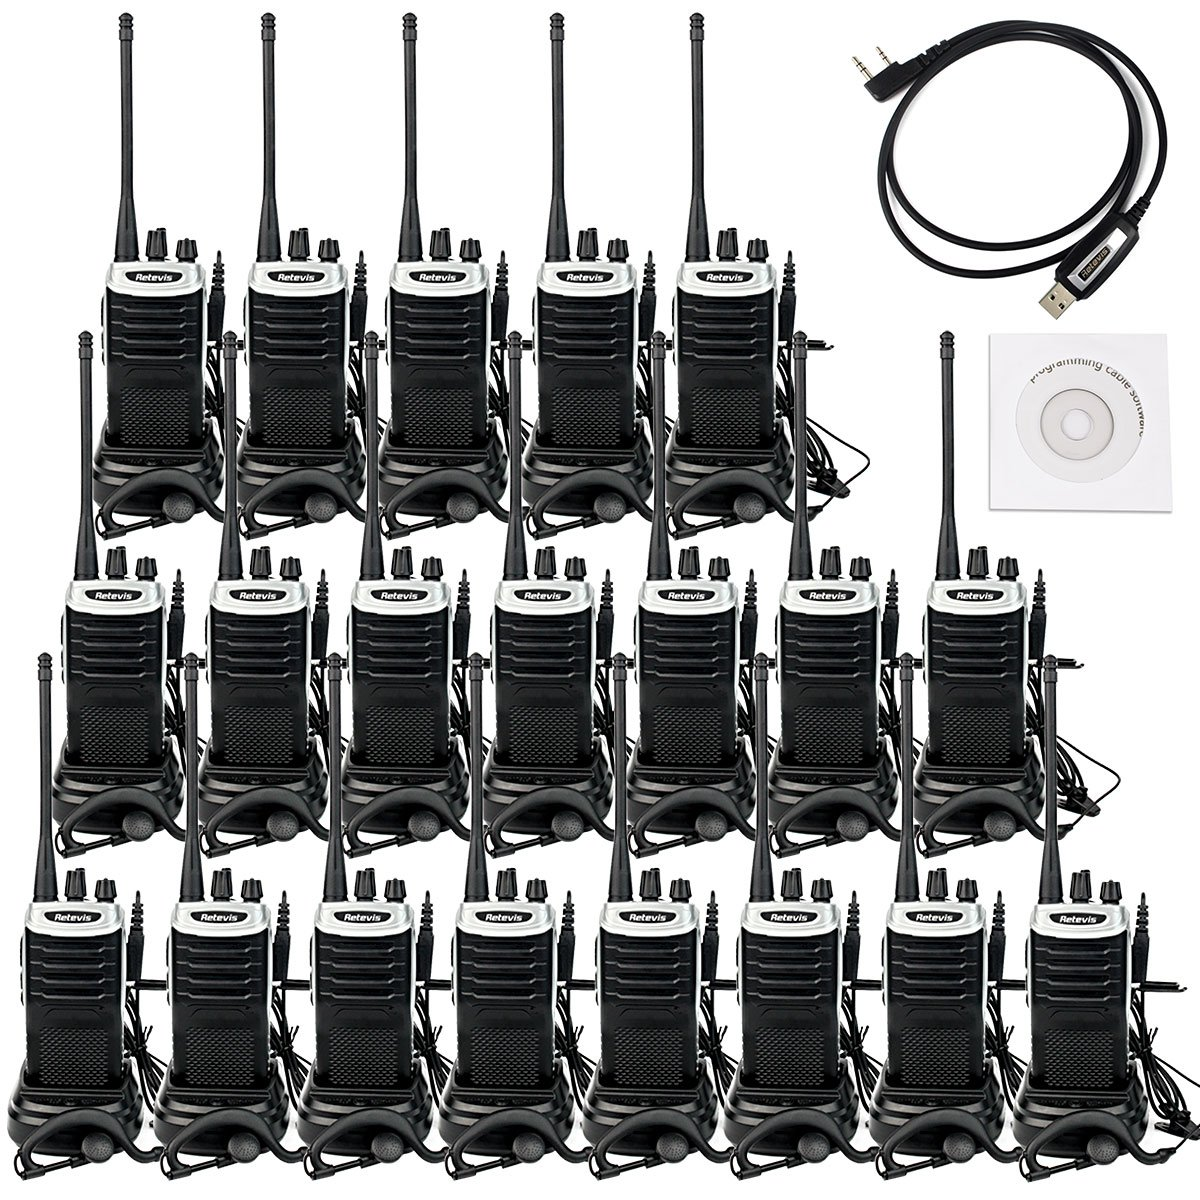 Retevis RT7 Walkie Talkies Rechargeable UHF 400-470MHz 3W 16CH Two Way Radio with Earpiece(20 Pack) and Programming Cable